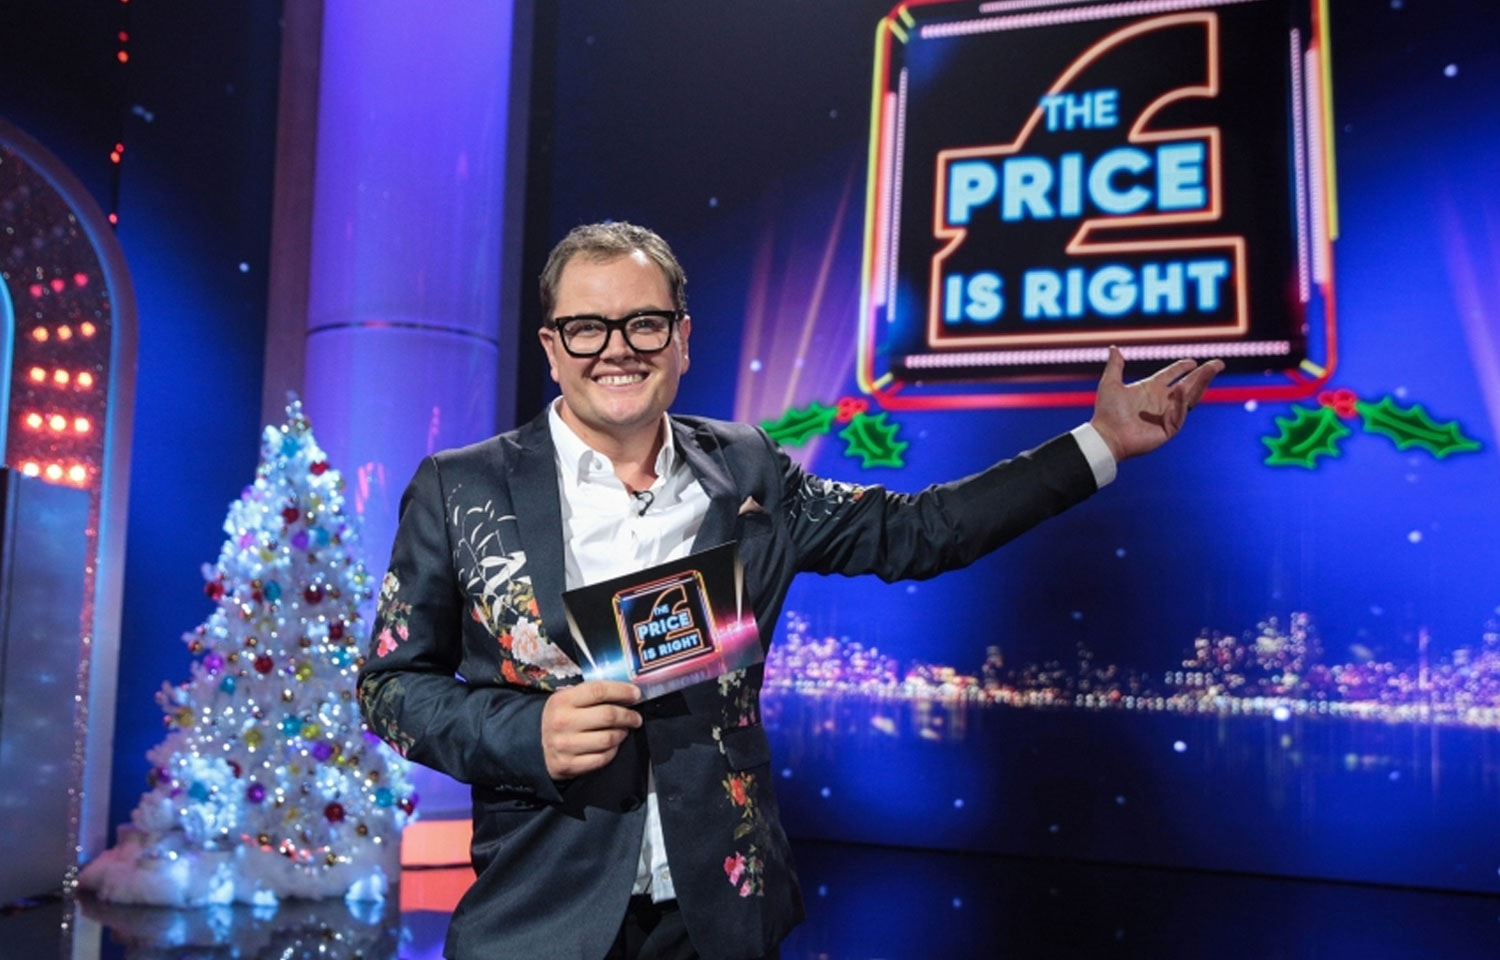 ALAN CARR'S EPIC GAMESHOW CHRISTMAS SPECIAL HITS SCREENS